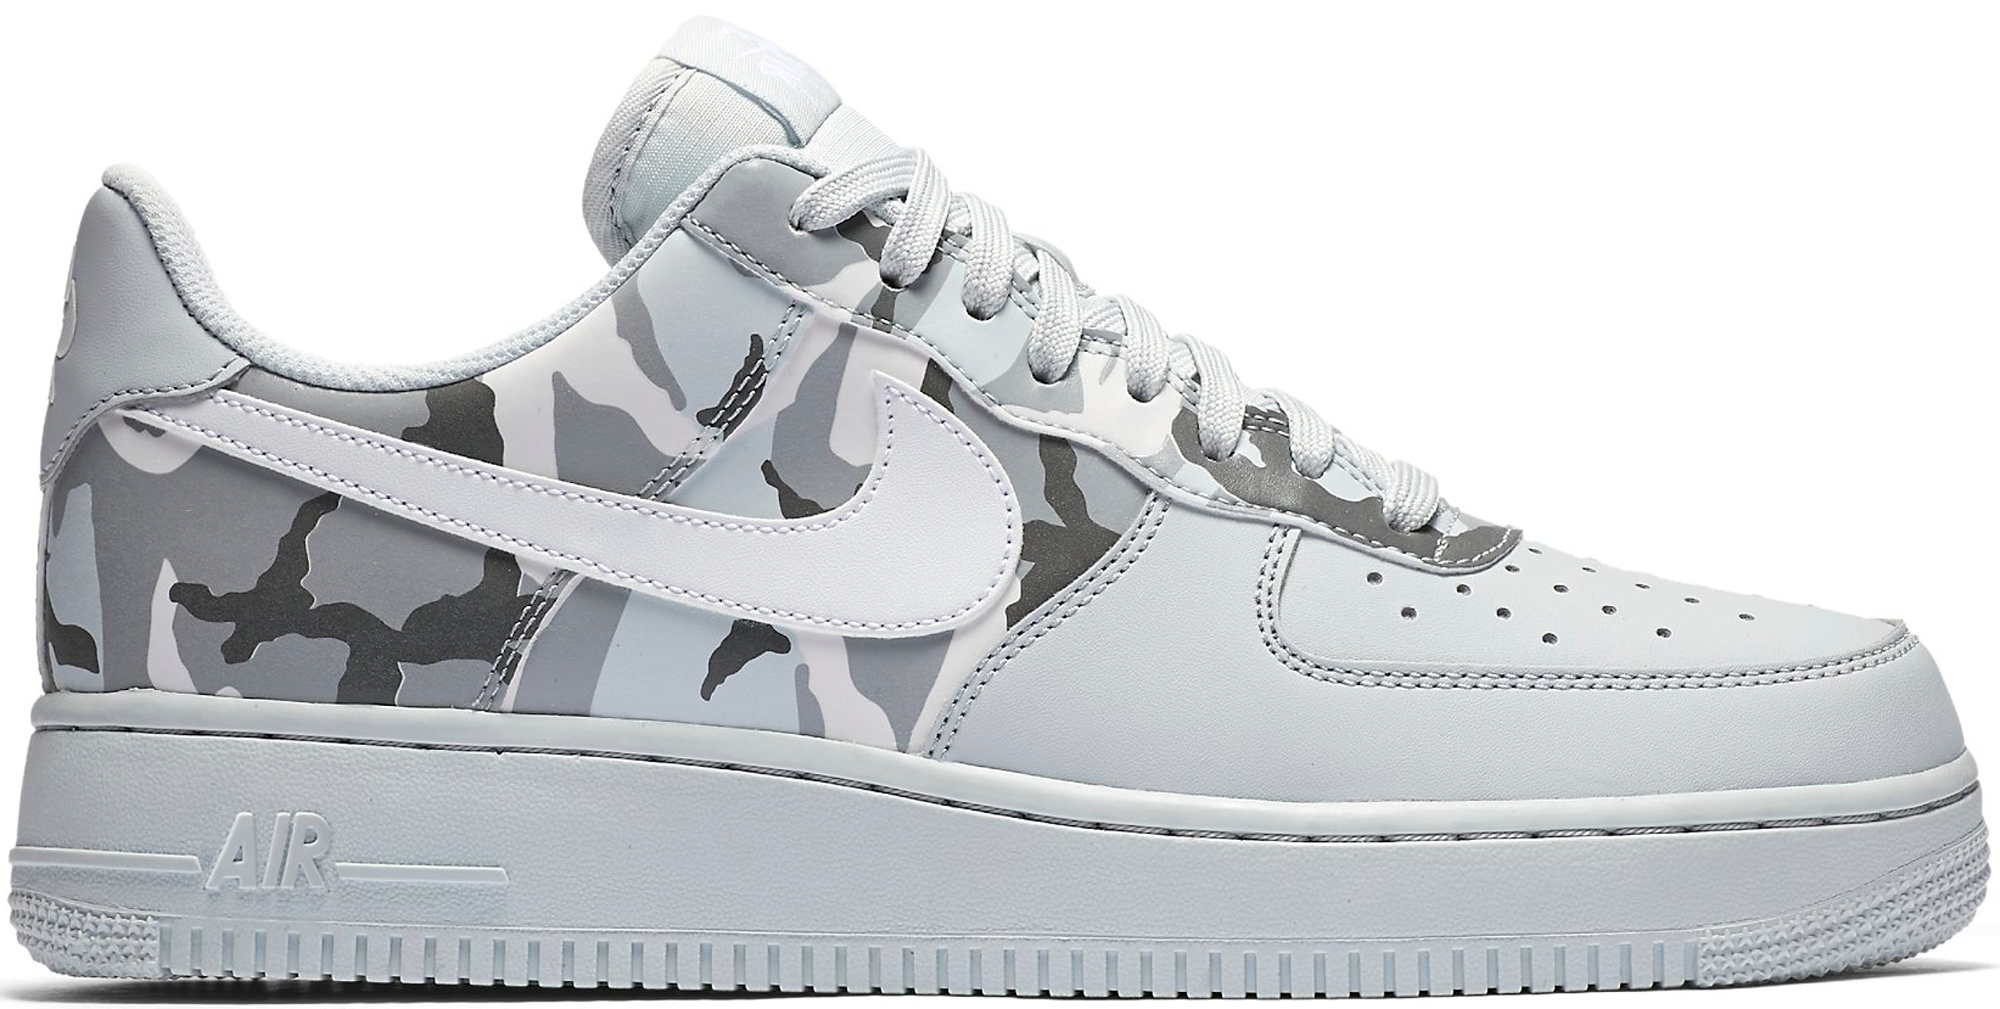 Nike Air Force One De Camouflage Blanc